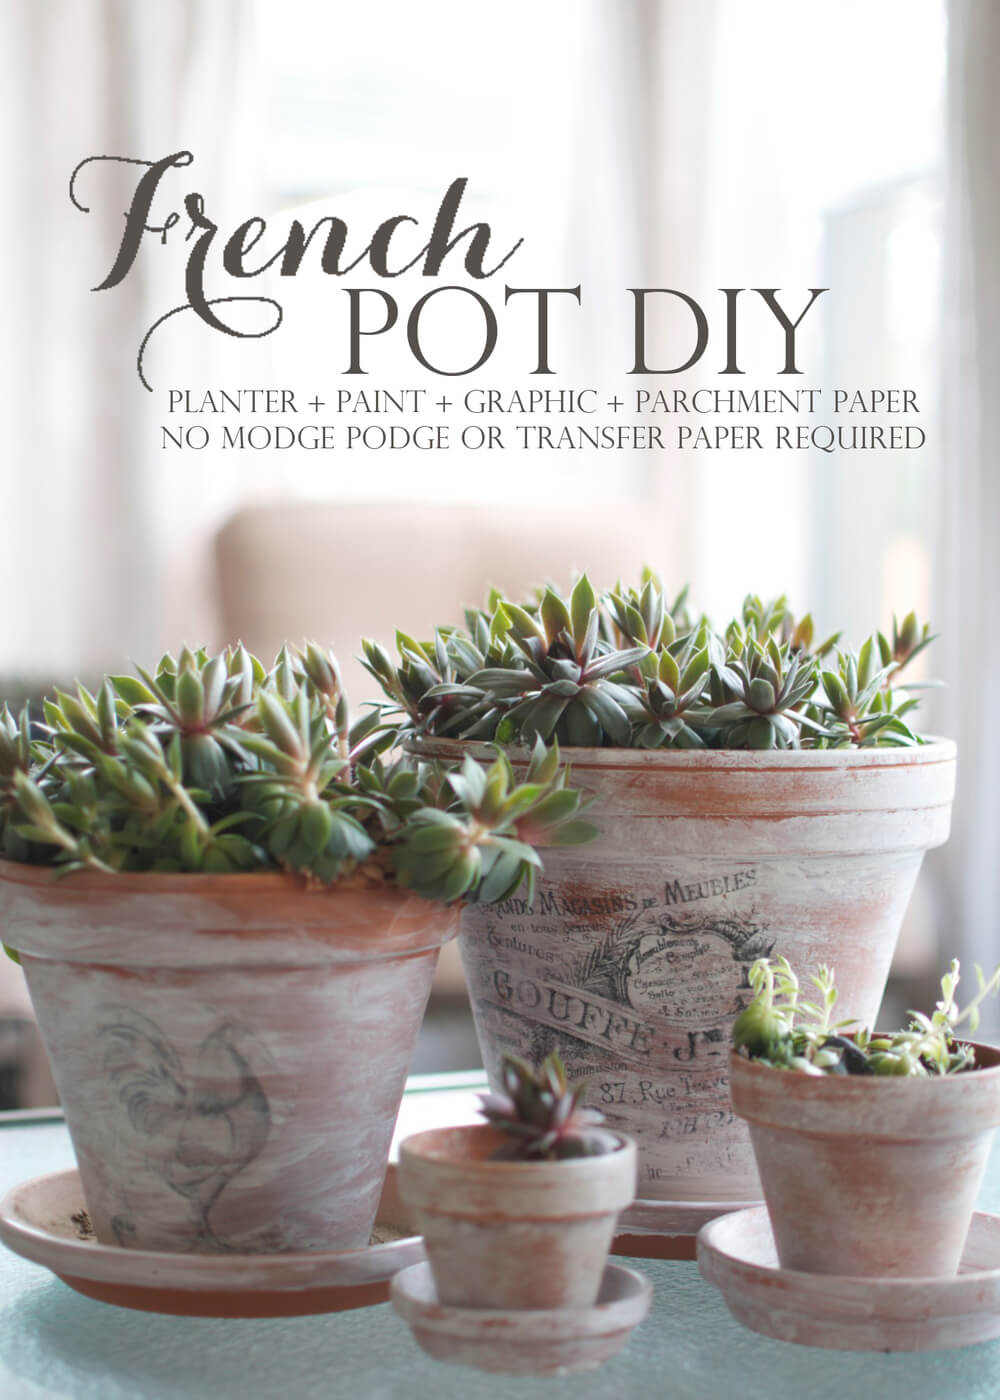 35+ Best French Country Design and Decor Ideas for 2018 Garden Designs Country French Pottery on floral garden design, french garden furniture, french garden house design, greek revival garden design, victorian garden design, small cottage garden design, french garden drawing designs, autumn garden design, french small garden design, vintage garden design, mid-century modern garden design, tuscan garden design, french cottage gardens, french style gardens, french garden sheds, english garden design, prairie garden design, italian garden design, dragonfly garden design, primitive garden design,